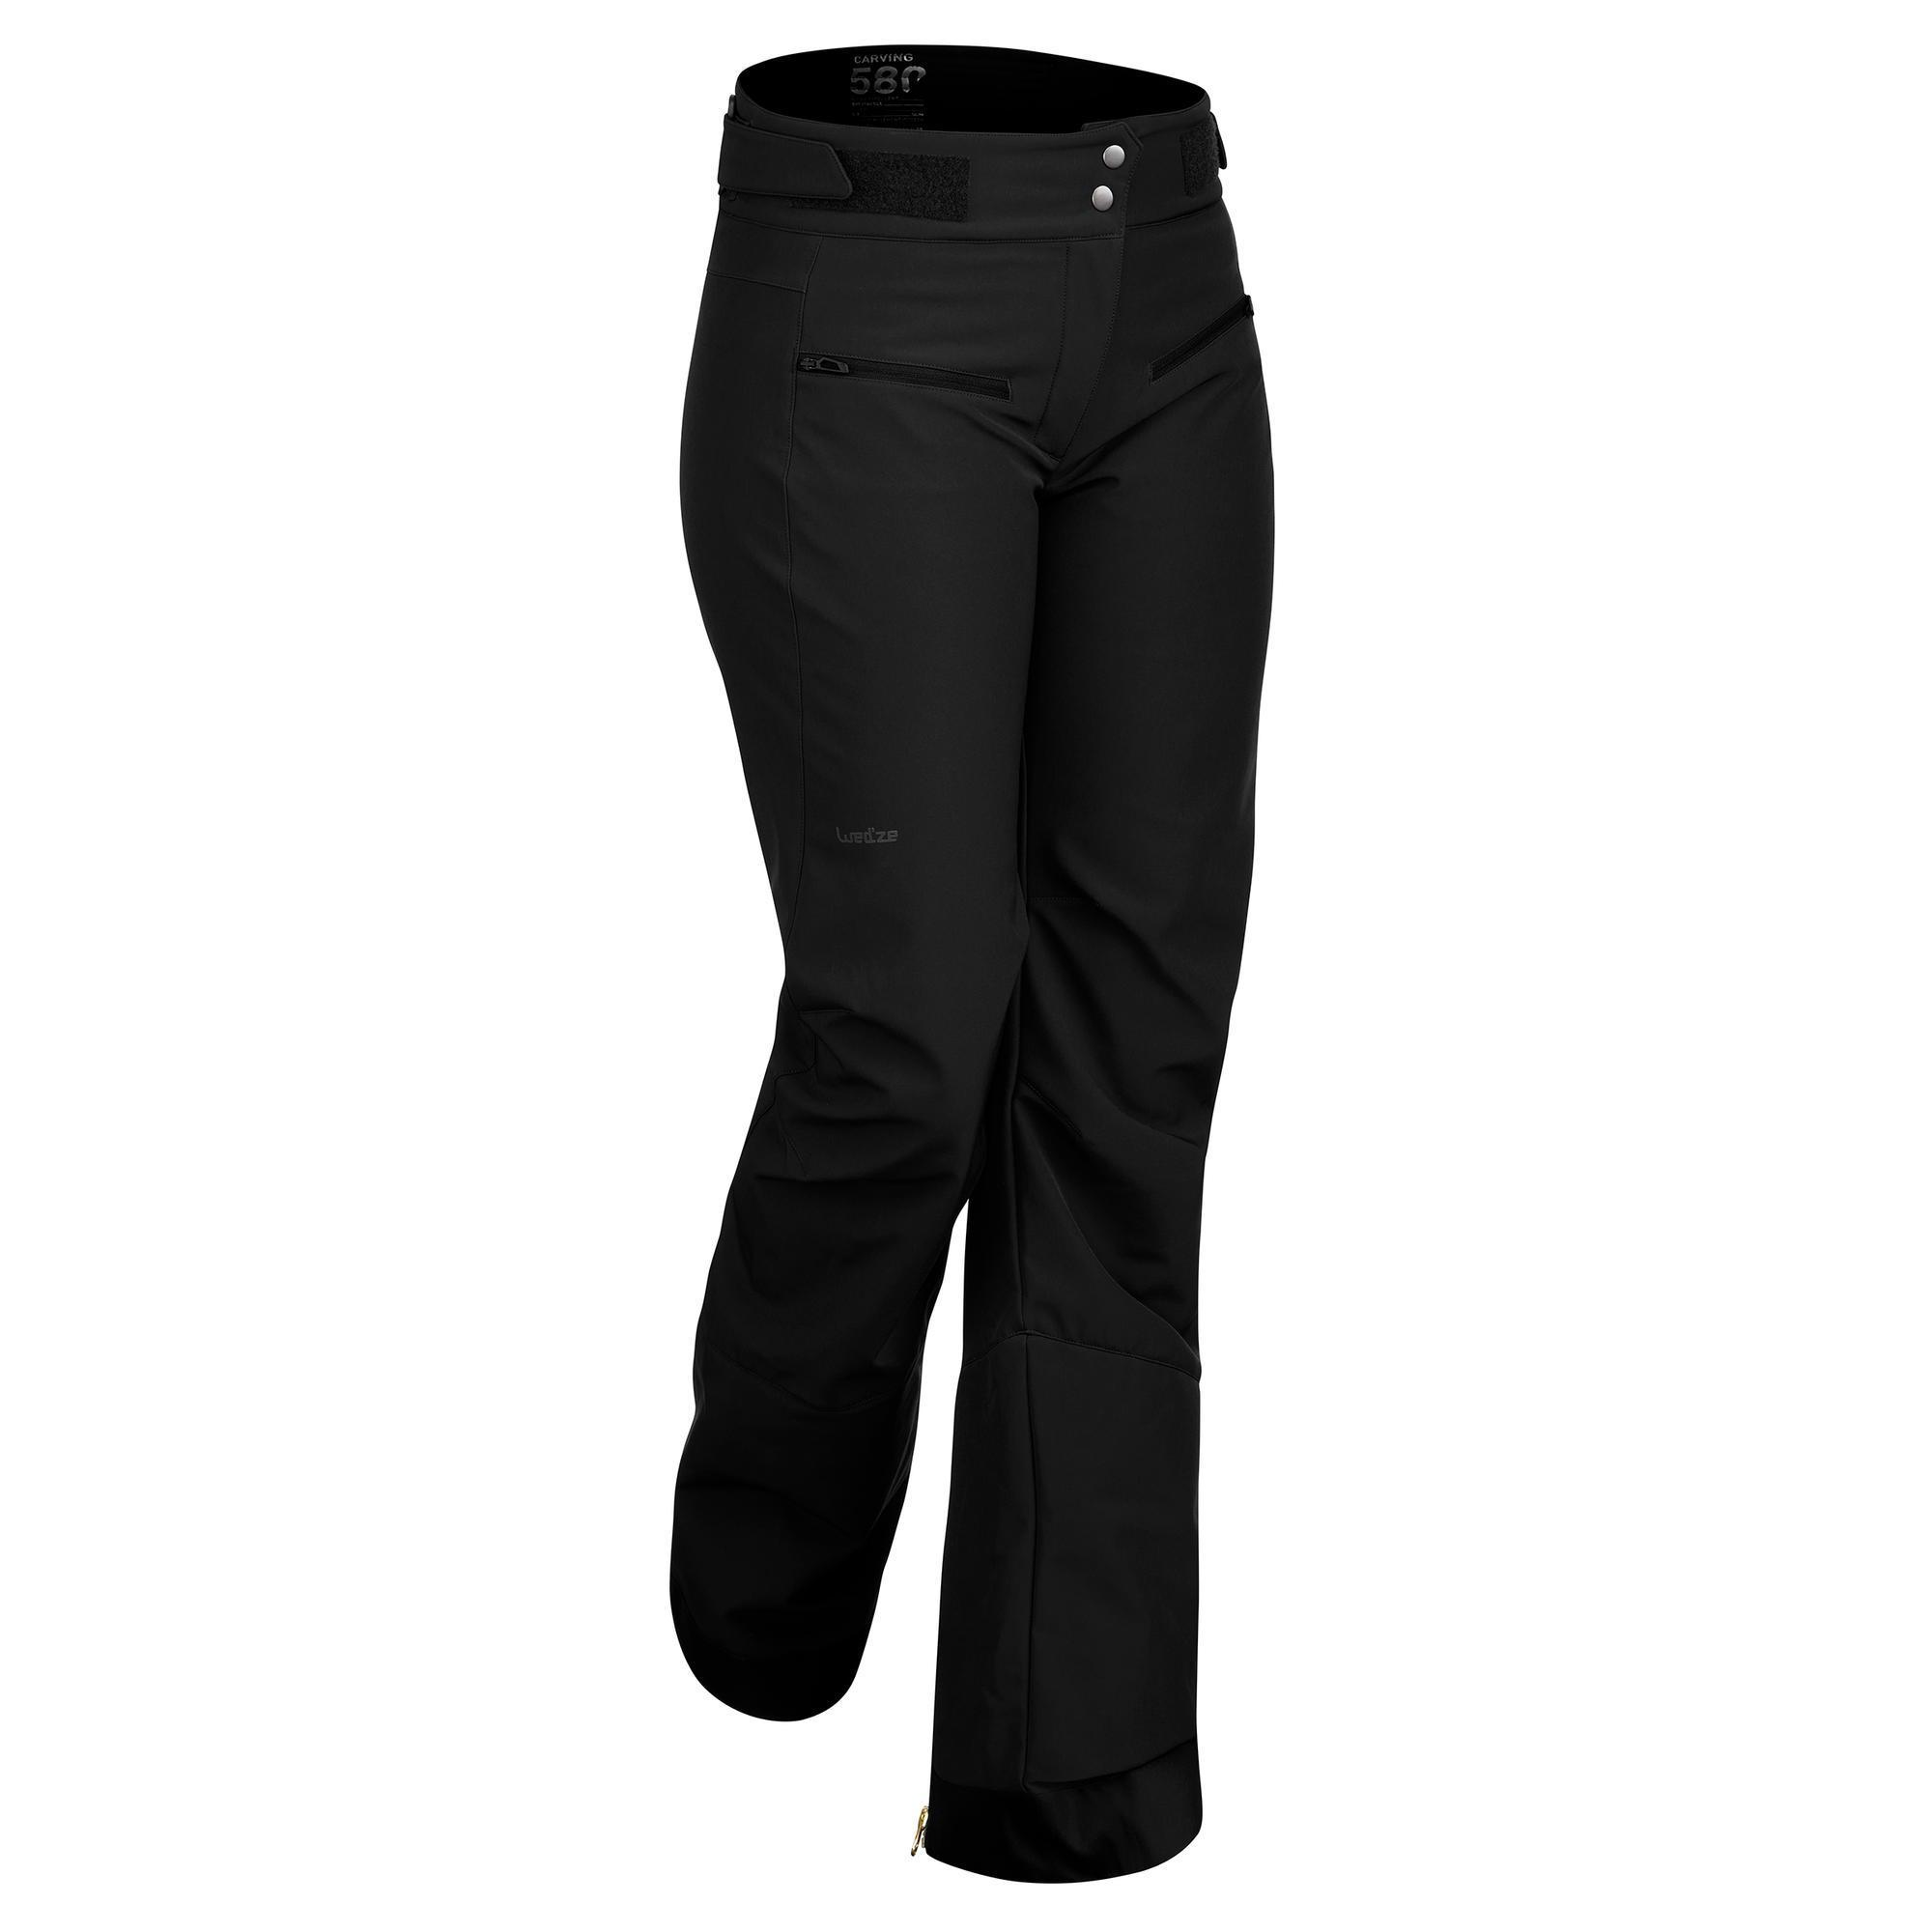 Wed'ze Skibroek voor dames SKI-P PA 580 slim fit